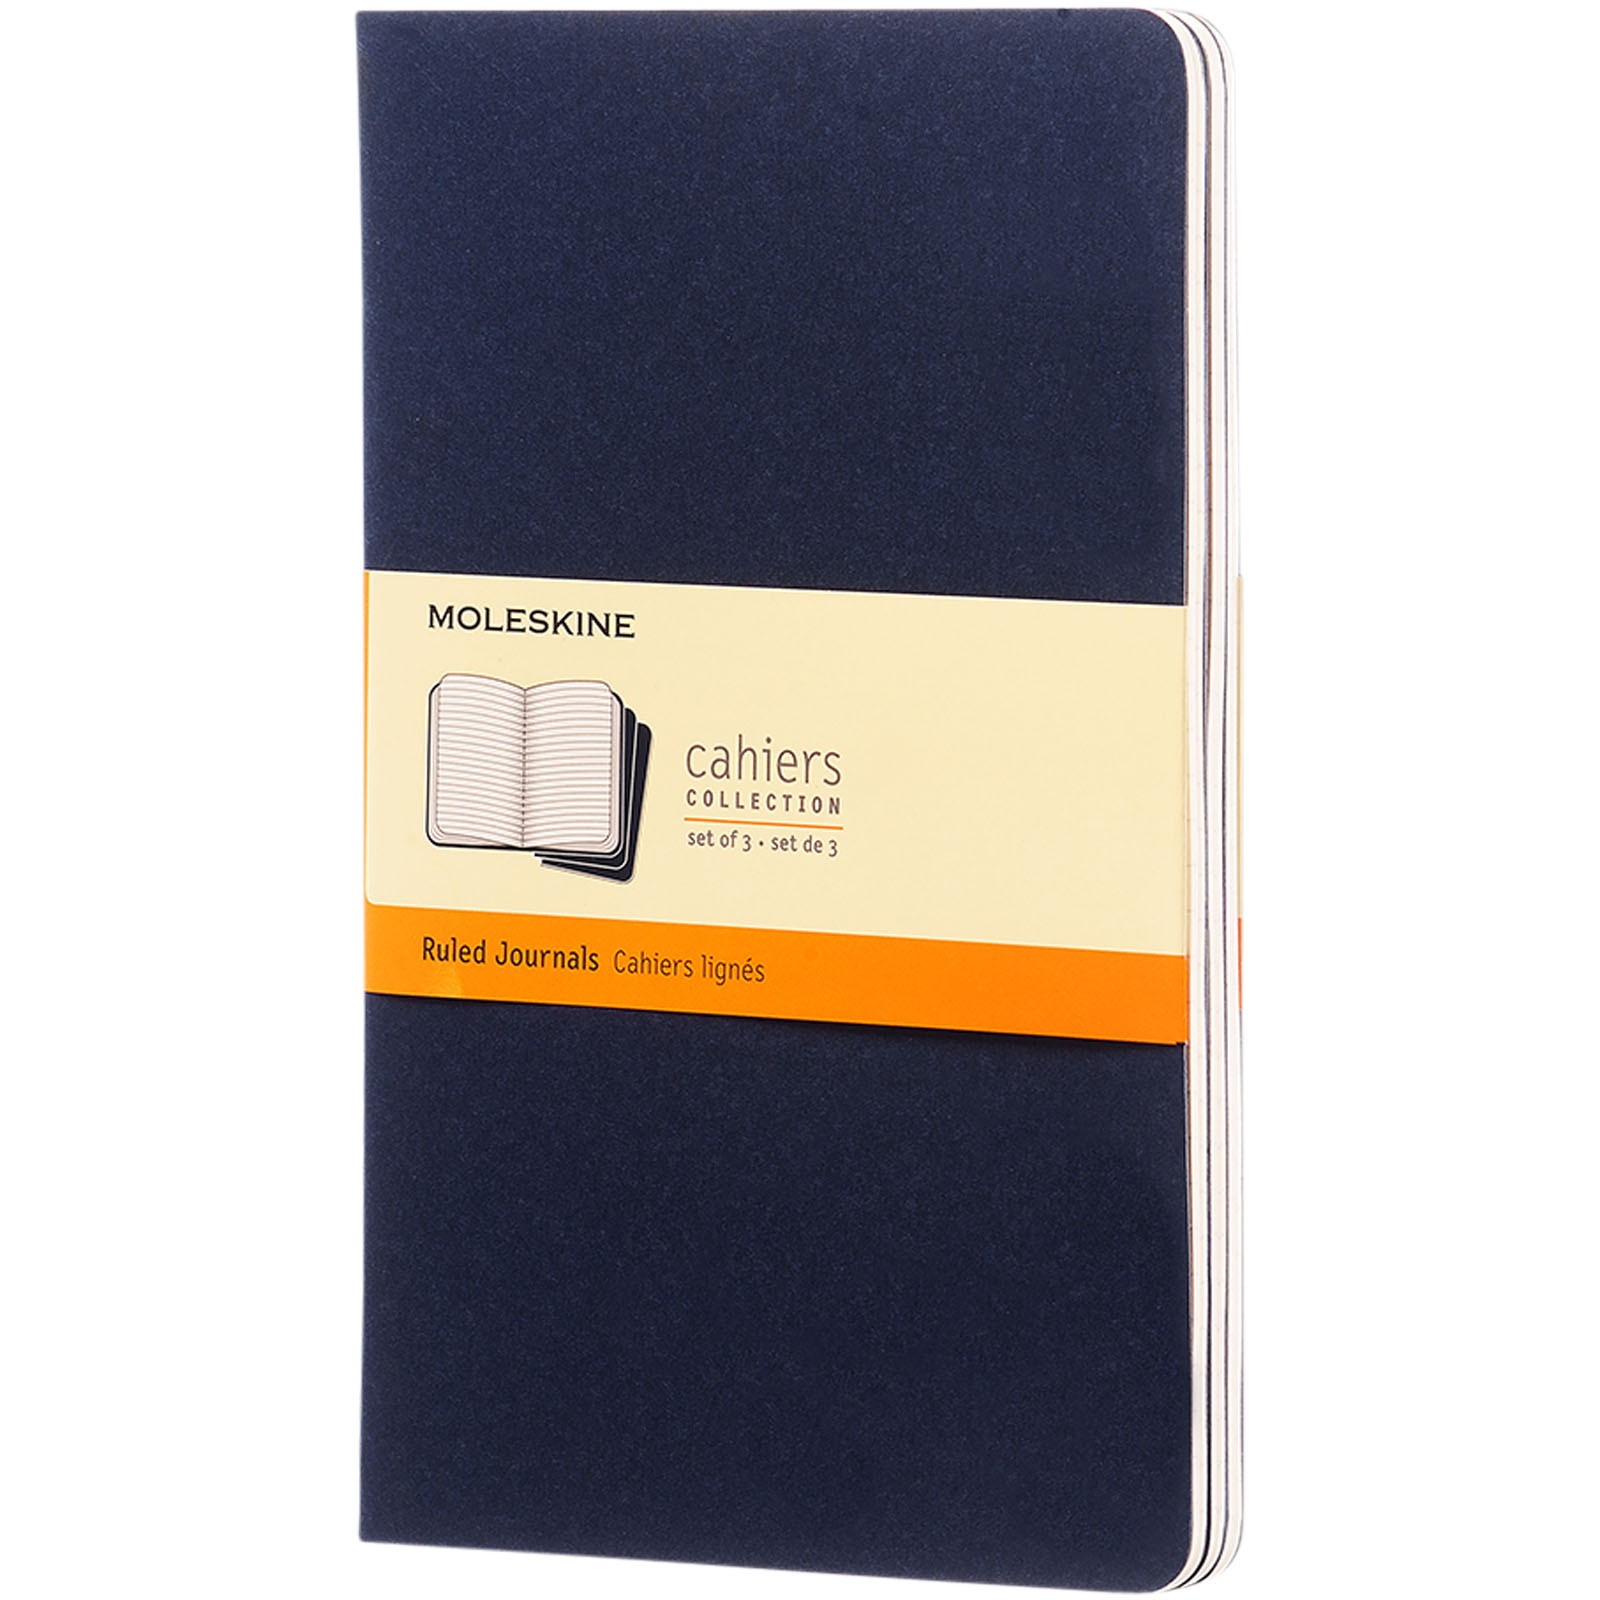 Cahier Journal L - ruled - Indigo blue